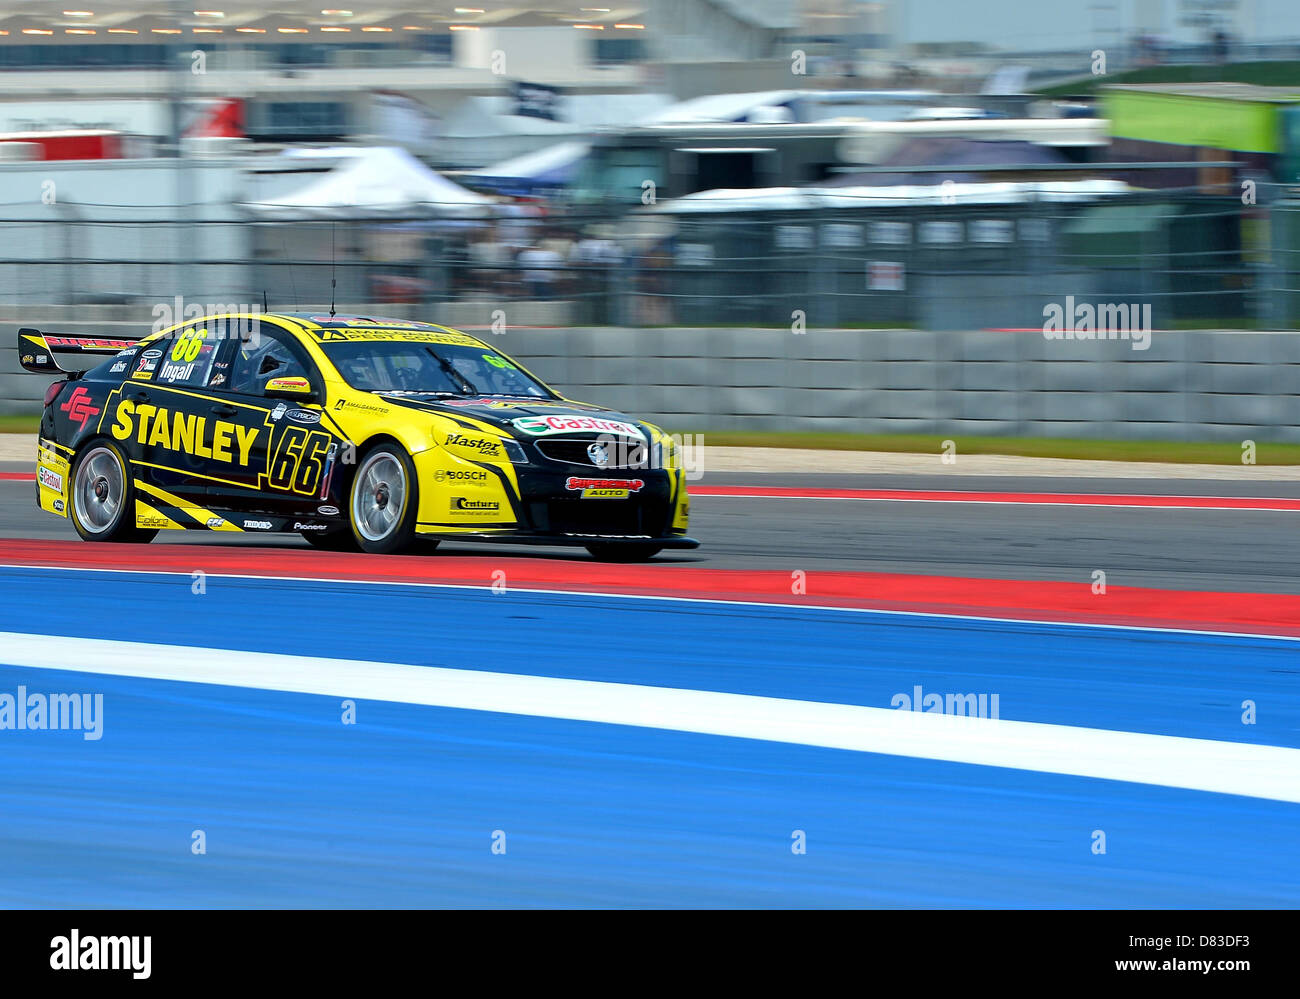 Walkinshaw Stock Photos & Walkinshaw Stock Images - Alamy